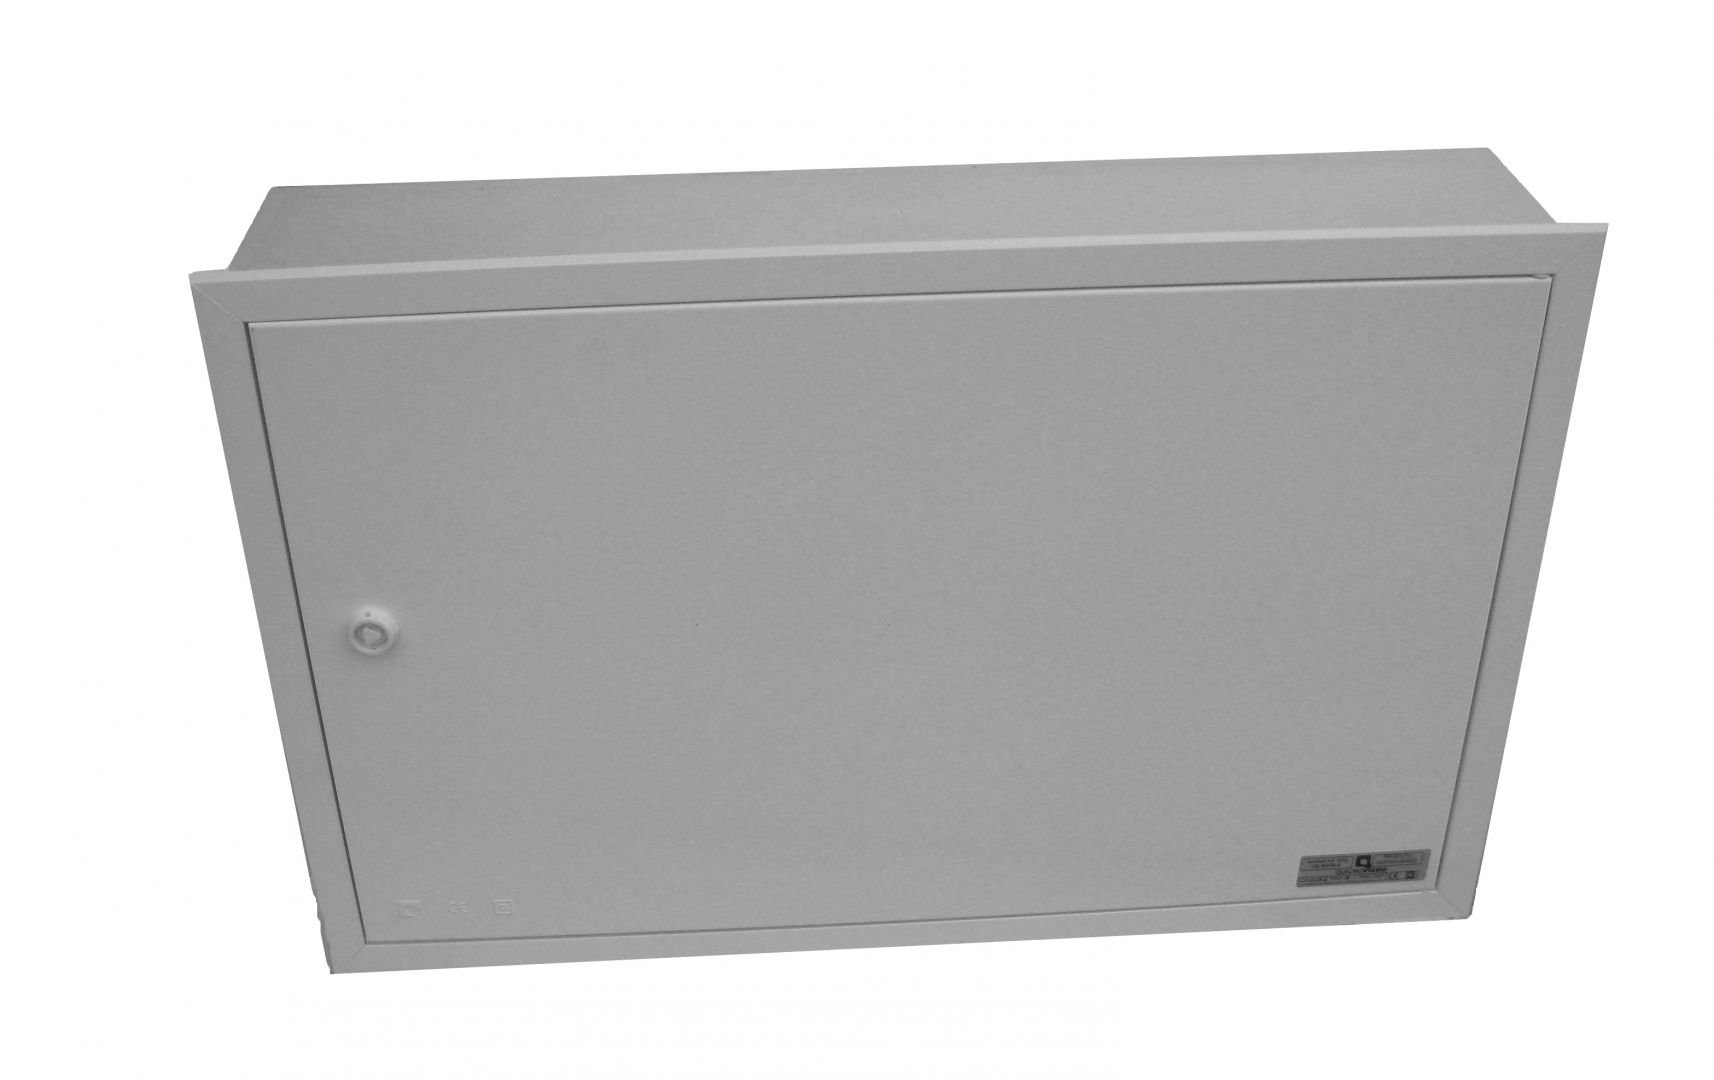 EMPTY BUILT-IN VISBOX BOX WITH DOOR AND FRAME 500X320X130